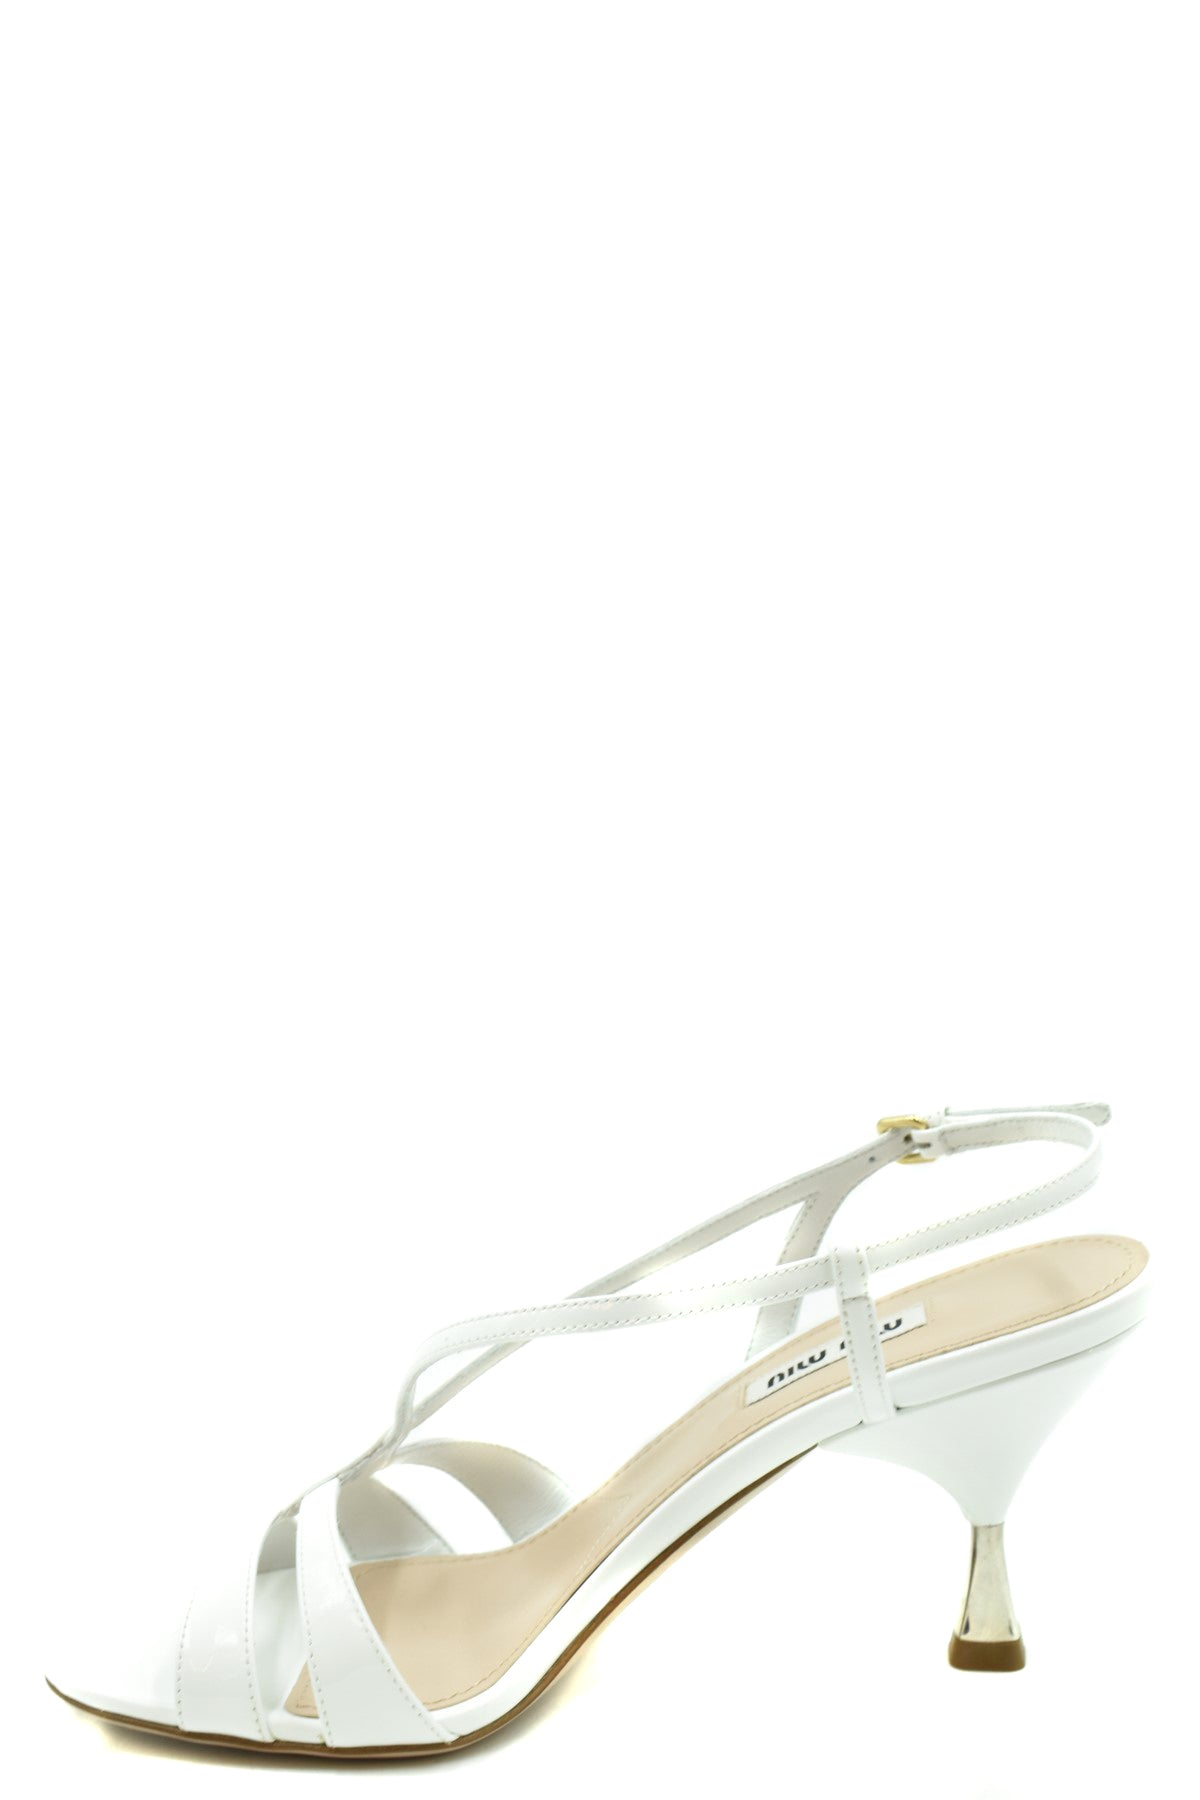 Shoes Miu Miu-Women's Fashion - Women's Shoes - Women's Sandals-Product Details Type Of Accessory: ShoesTerms: New With LabelSeason: Spring / SummerMain Color: WhiteMade In: ItalyGender: WomanHeel'S Height: 7,5 CmSize: EuComposition: Dye 100%Year: 2020Manufacturer Part Number: 5X154D 3Asn-Keyomi-Sook